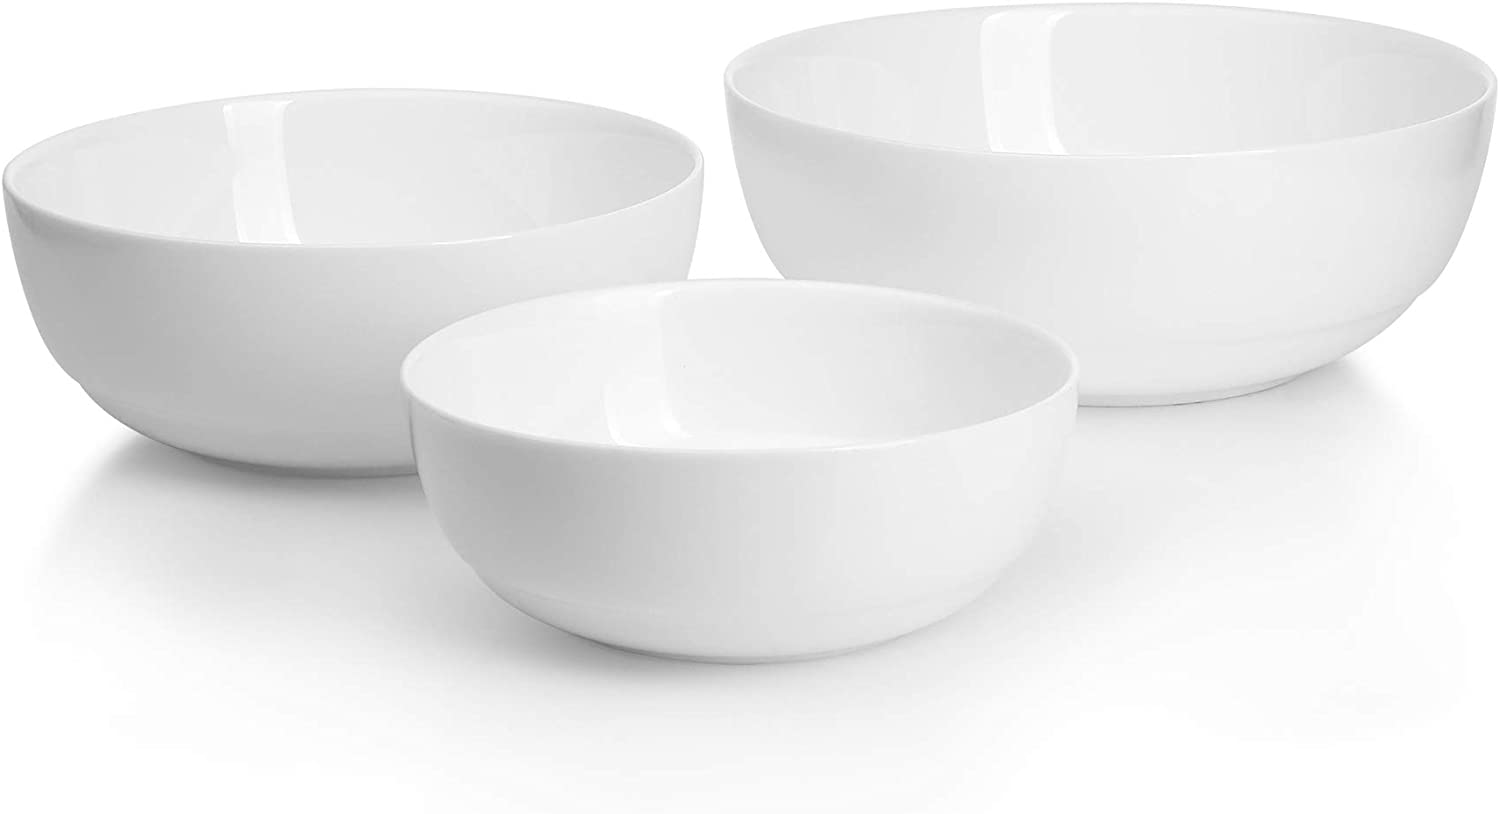 CR Creative Lifestyles Serving Bowls Bowl White 18-28-42 Sales of SALE items from new works lowest price Ounce